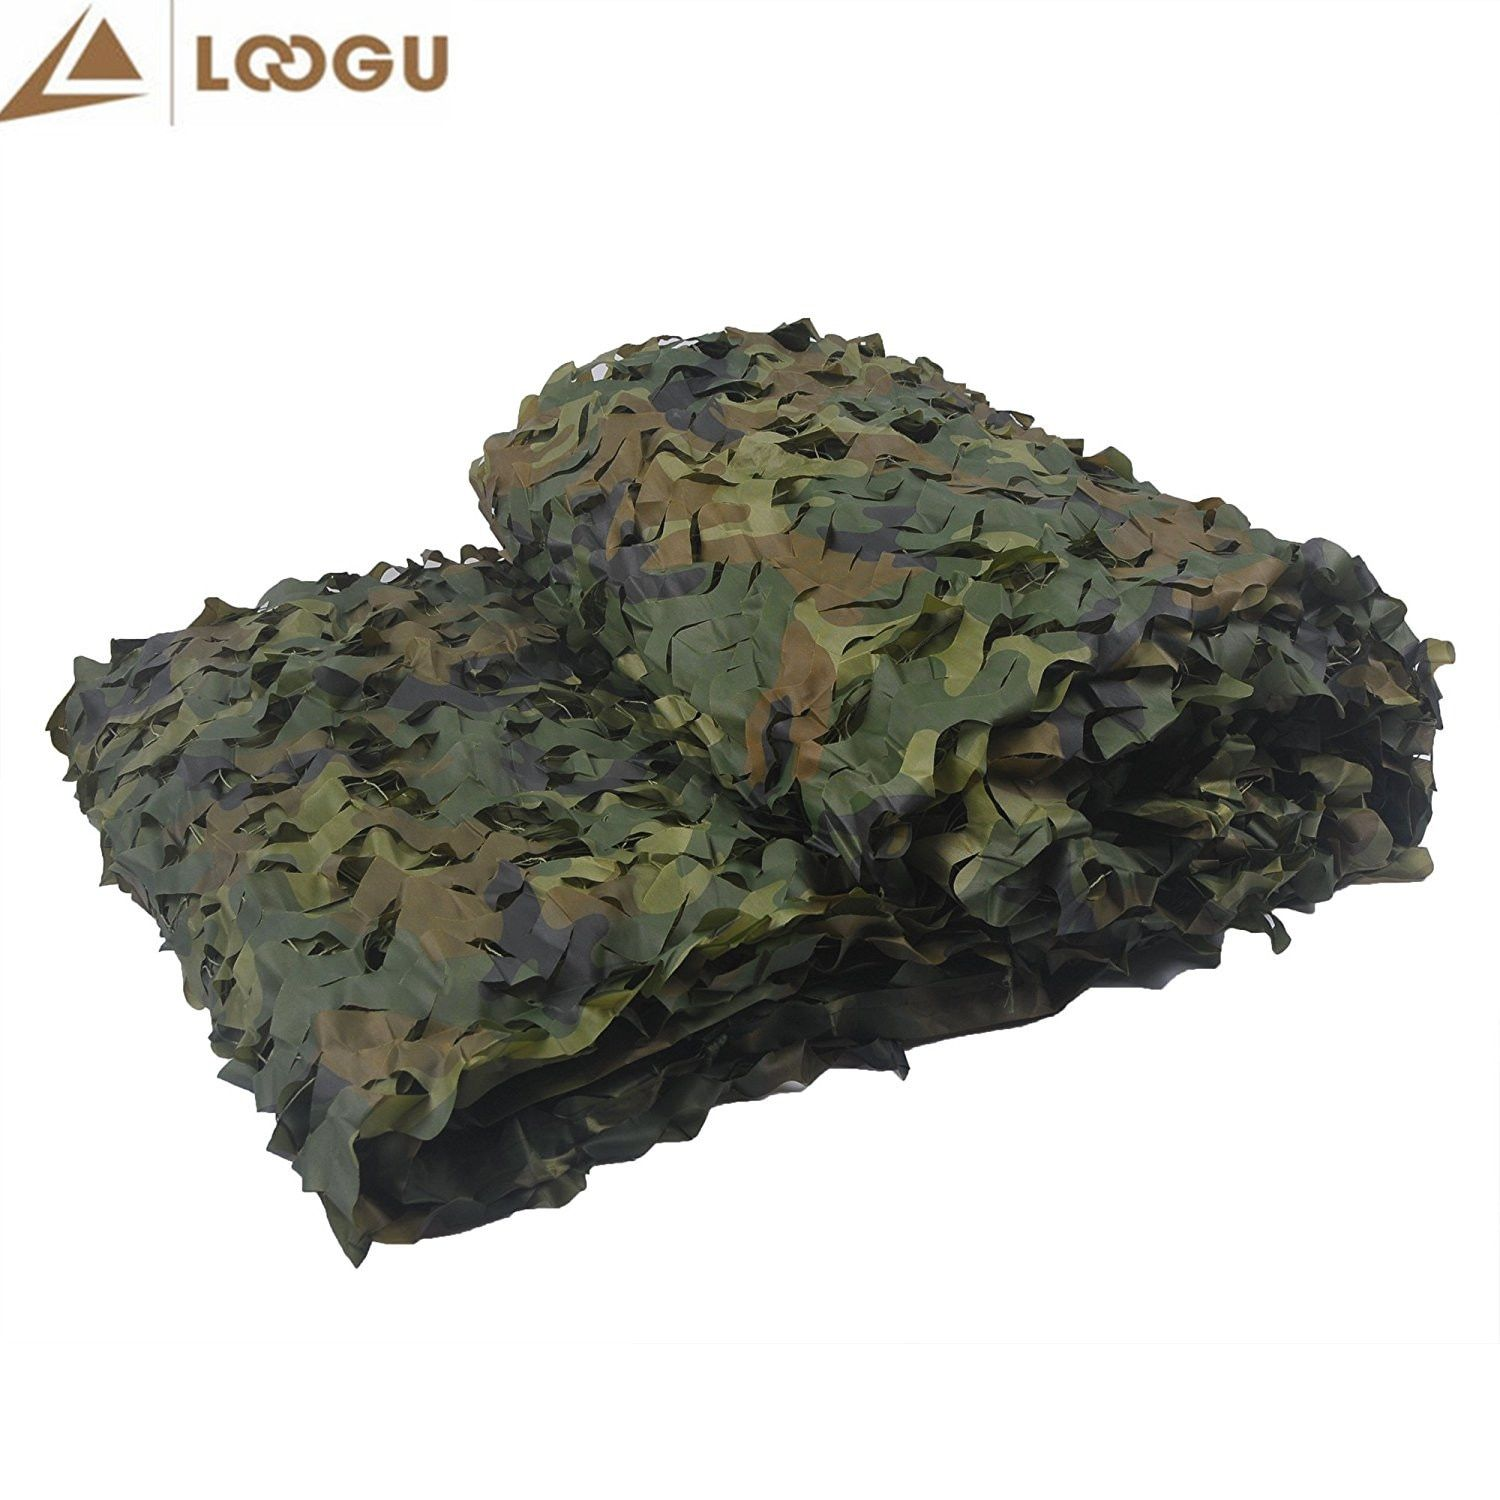 3M*6M Military Camouflage Net Sun Shelter 150D Polyester Oxford Camouflage Net Sun Shelter for Hunting Camping Tourist Sun Tents